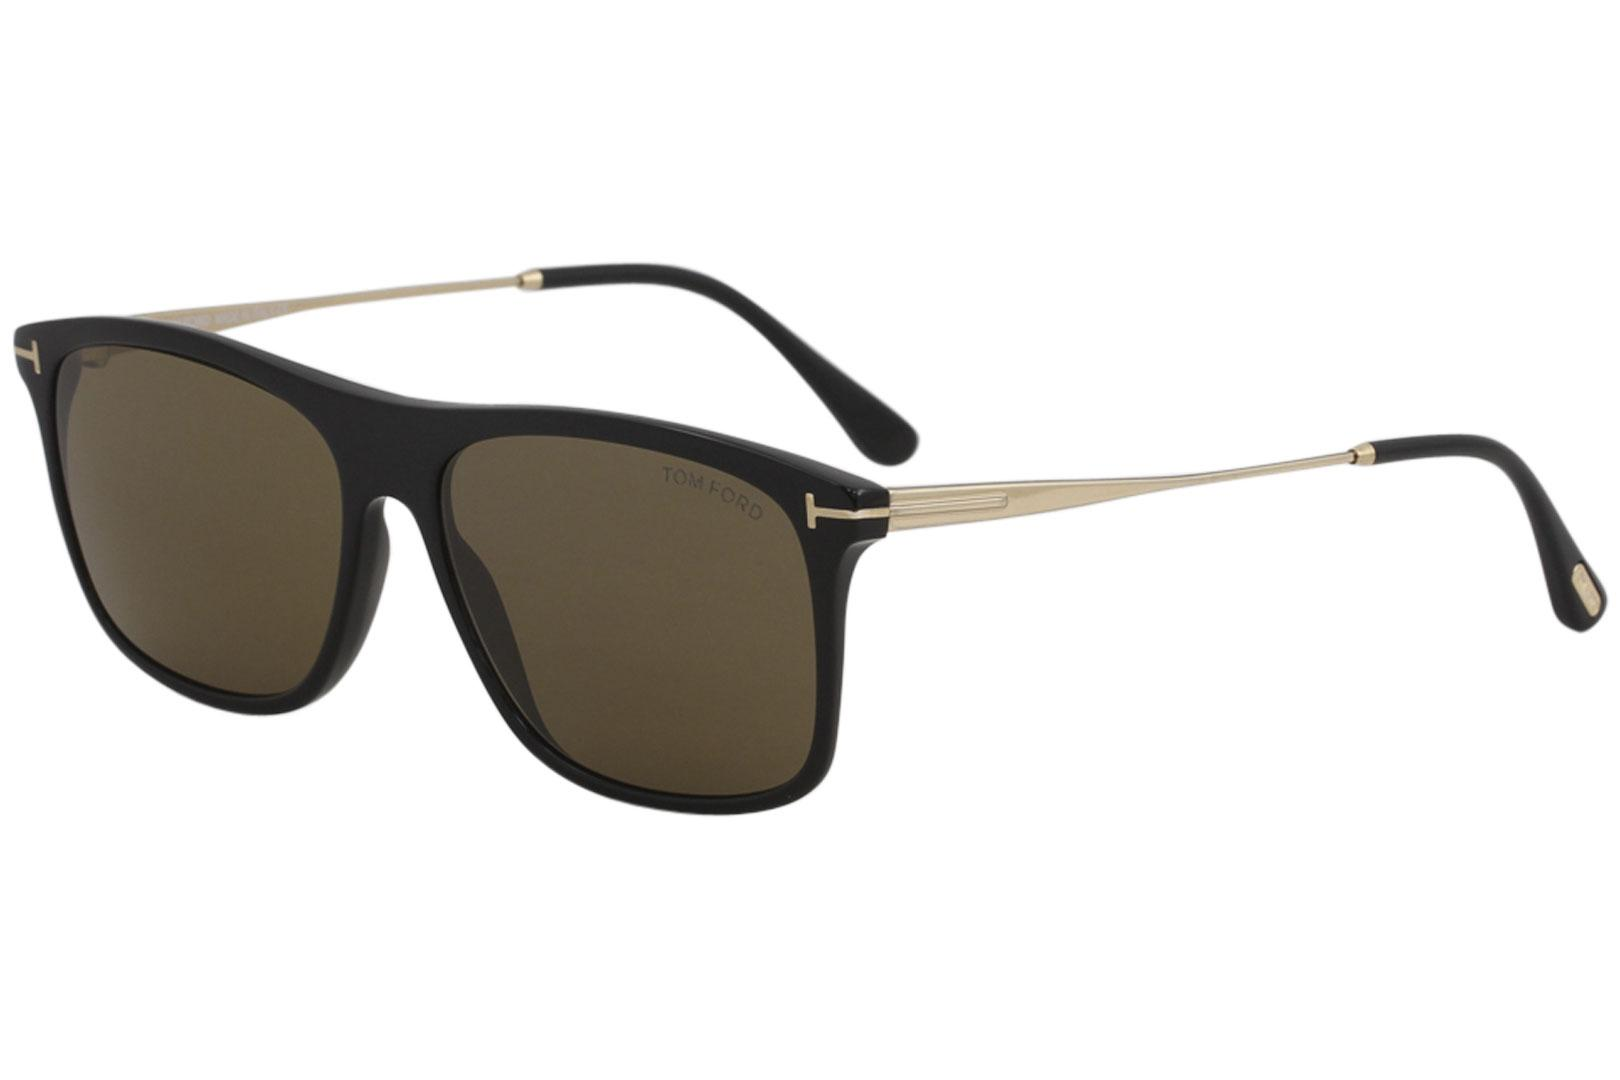 4dbc466837b8f Tom Ford Men s Max-02 TF588 TF 588 Fashion Square Sunglasses by Tom Ford